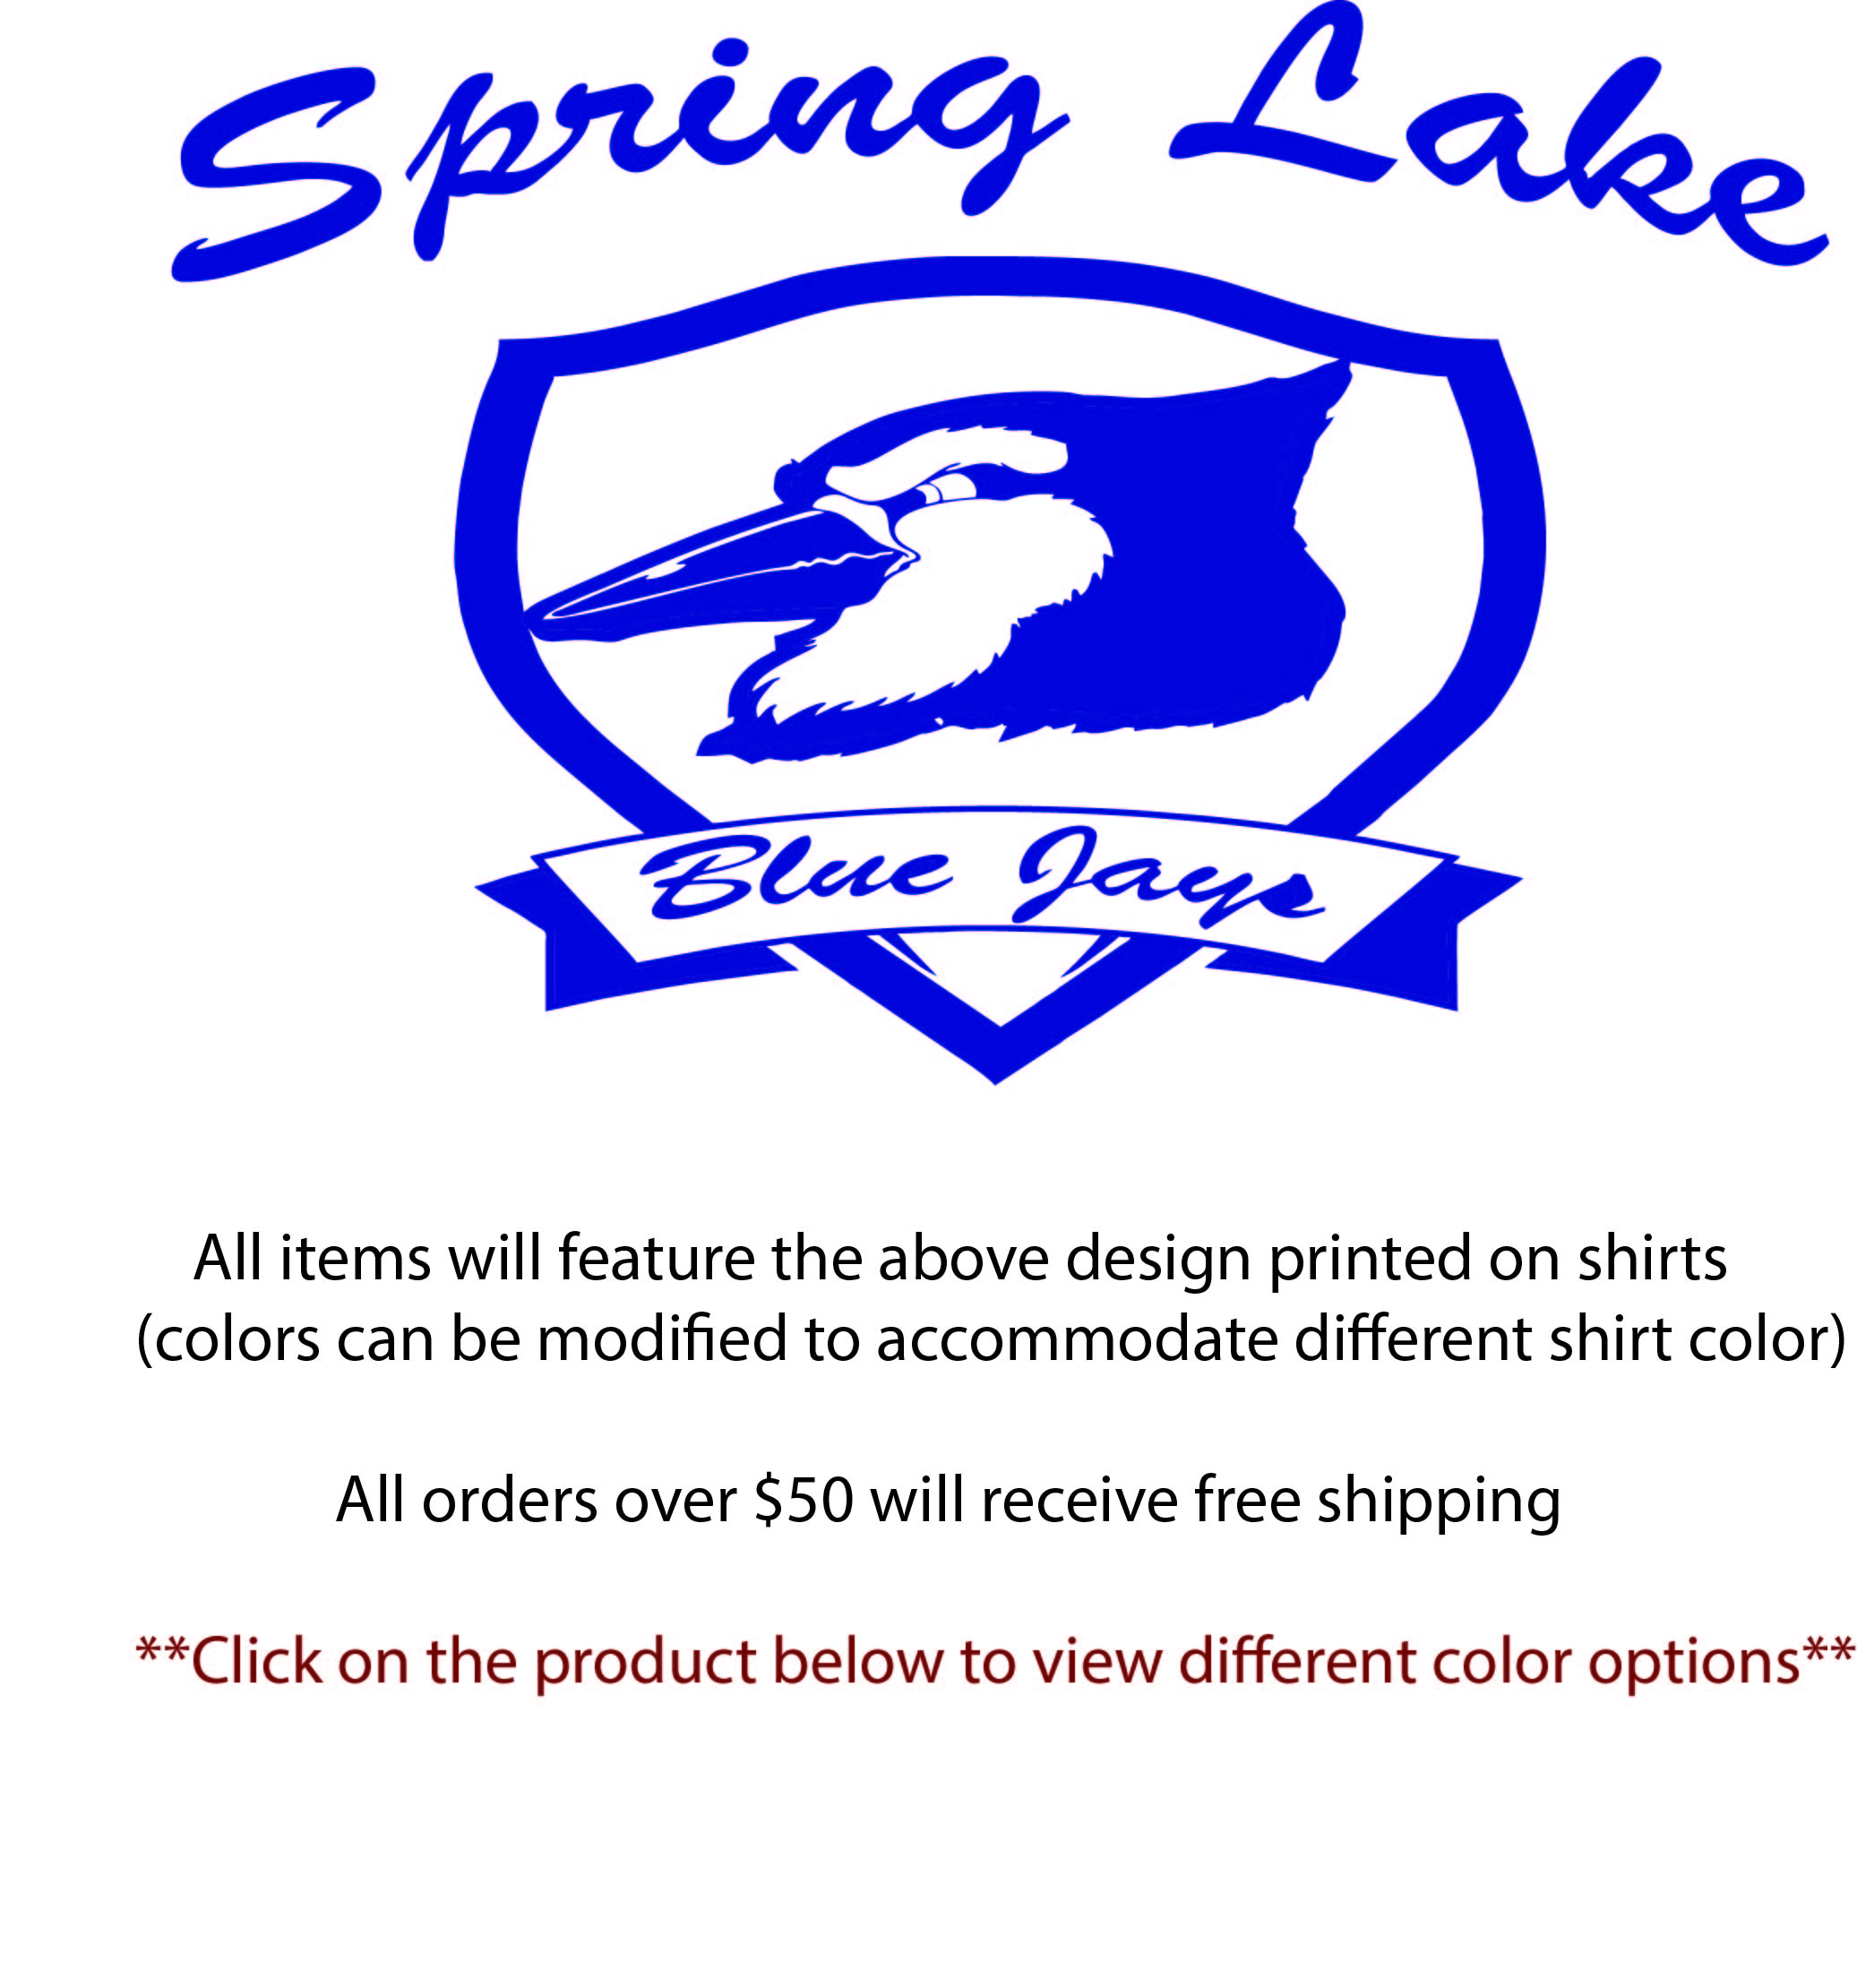 spring-lake-web-site-header-uniforms.jpg